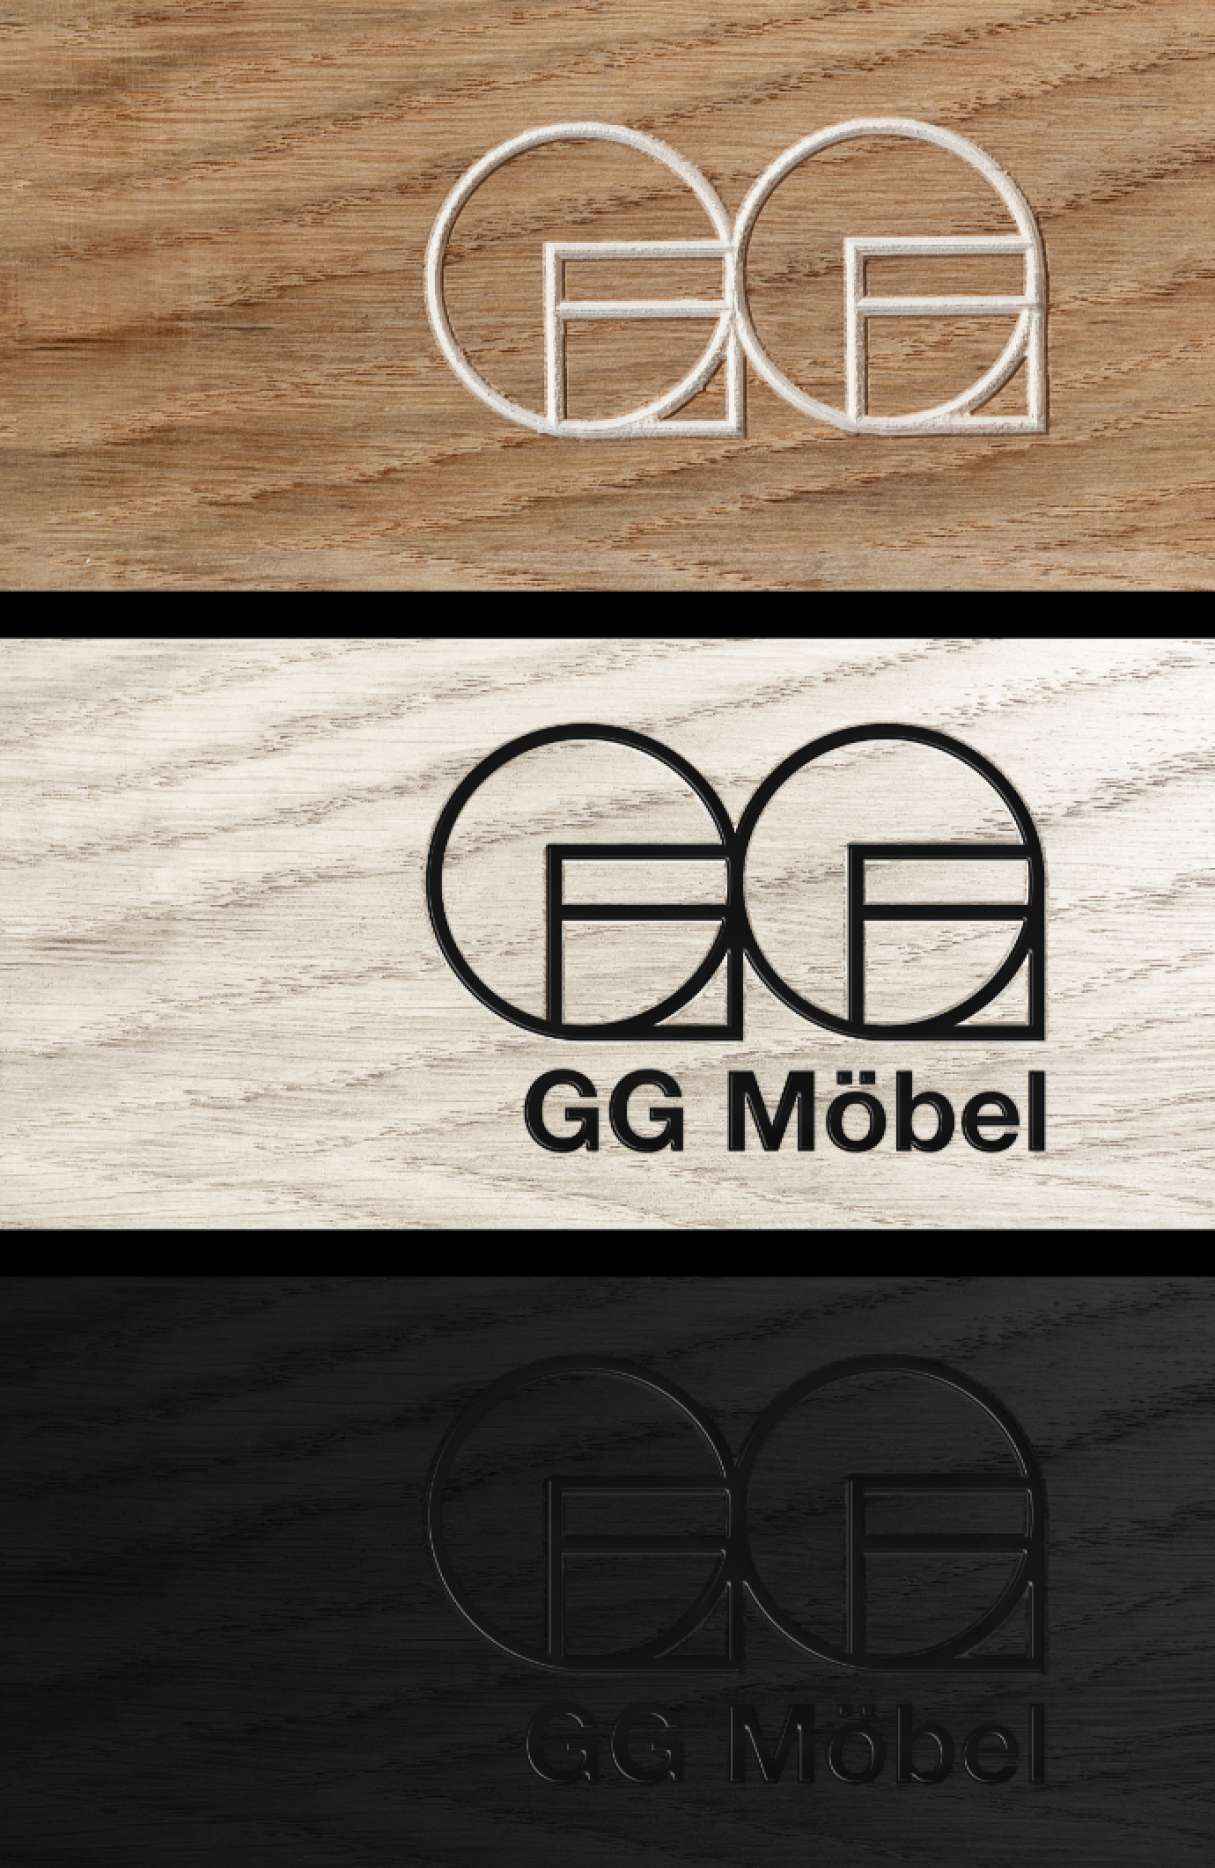 GG Mobel logo application 4